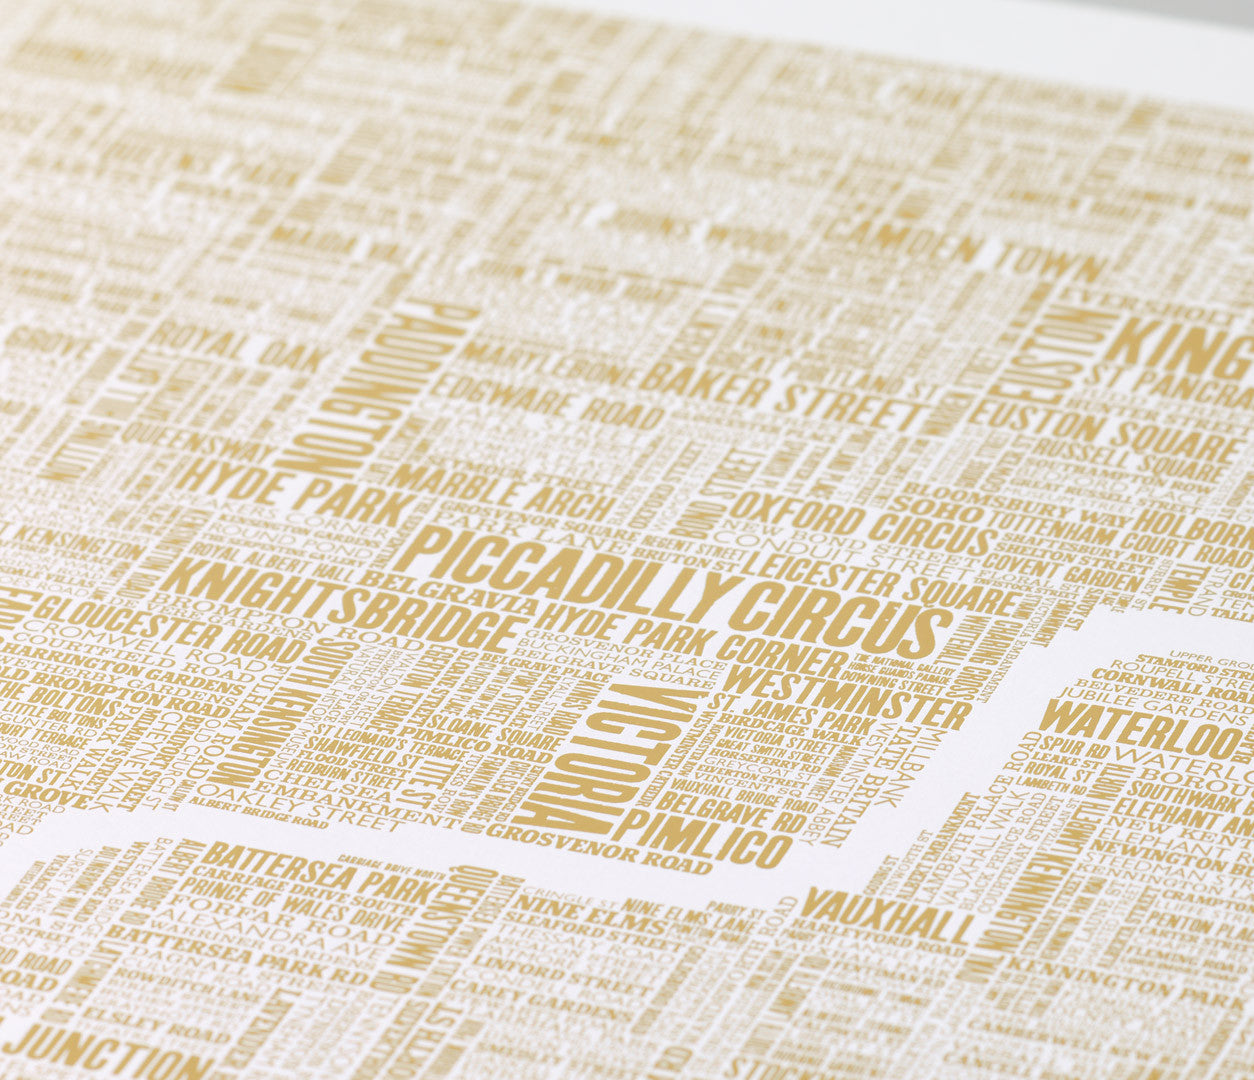 'London' Foil Blocked Type Map Limited Edition Print in Gold